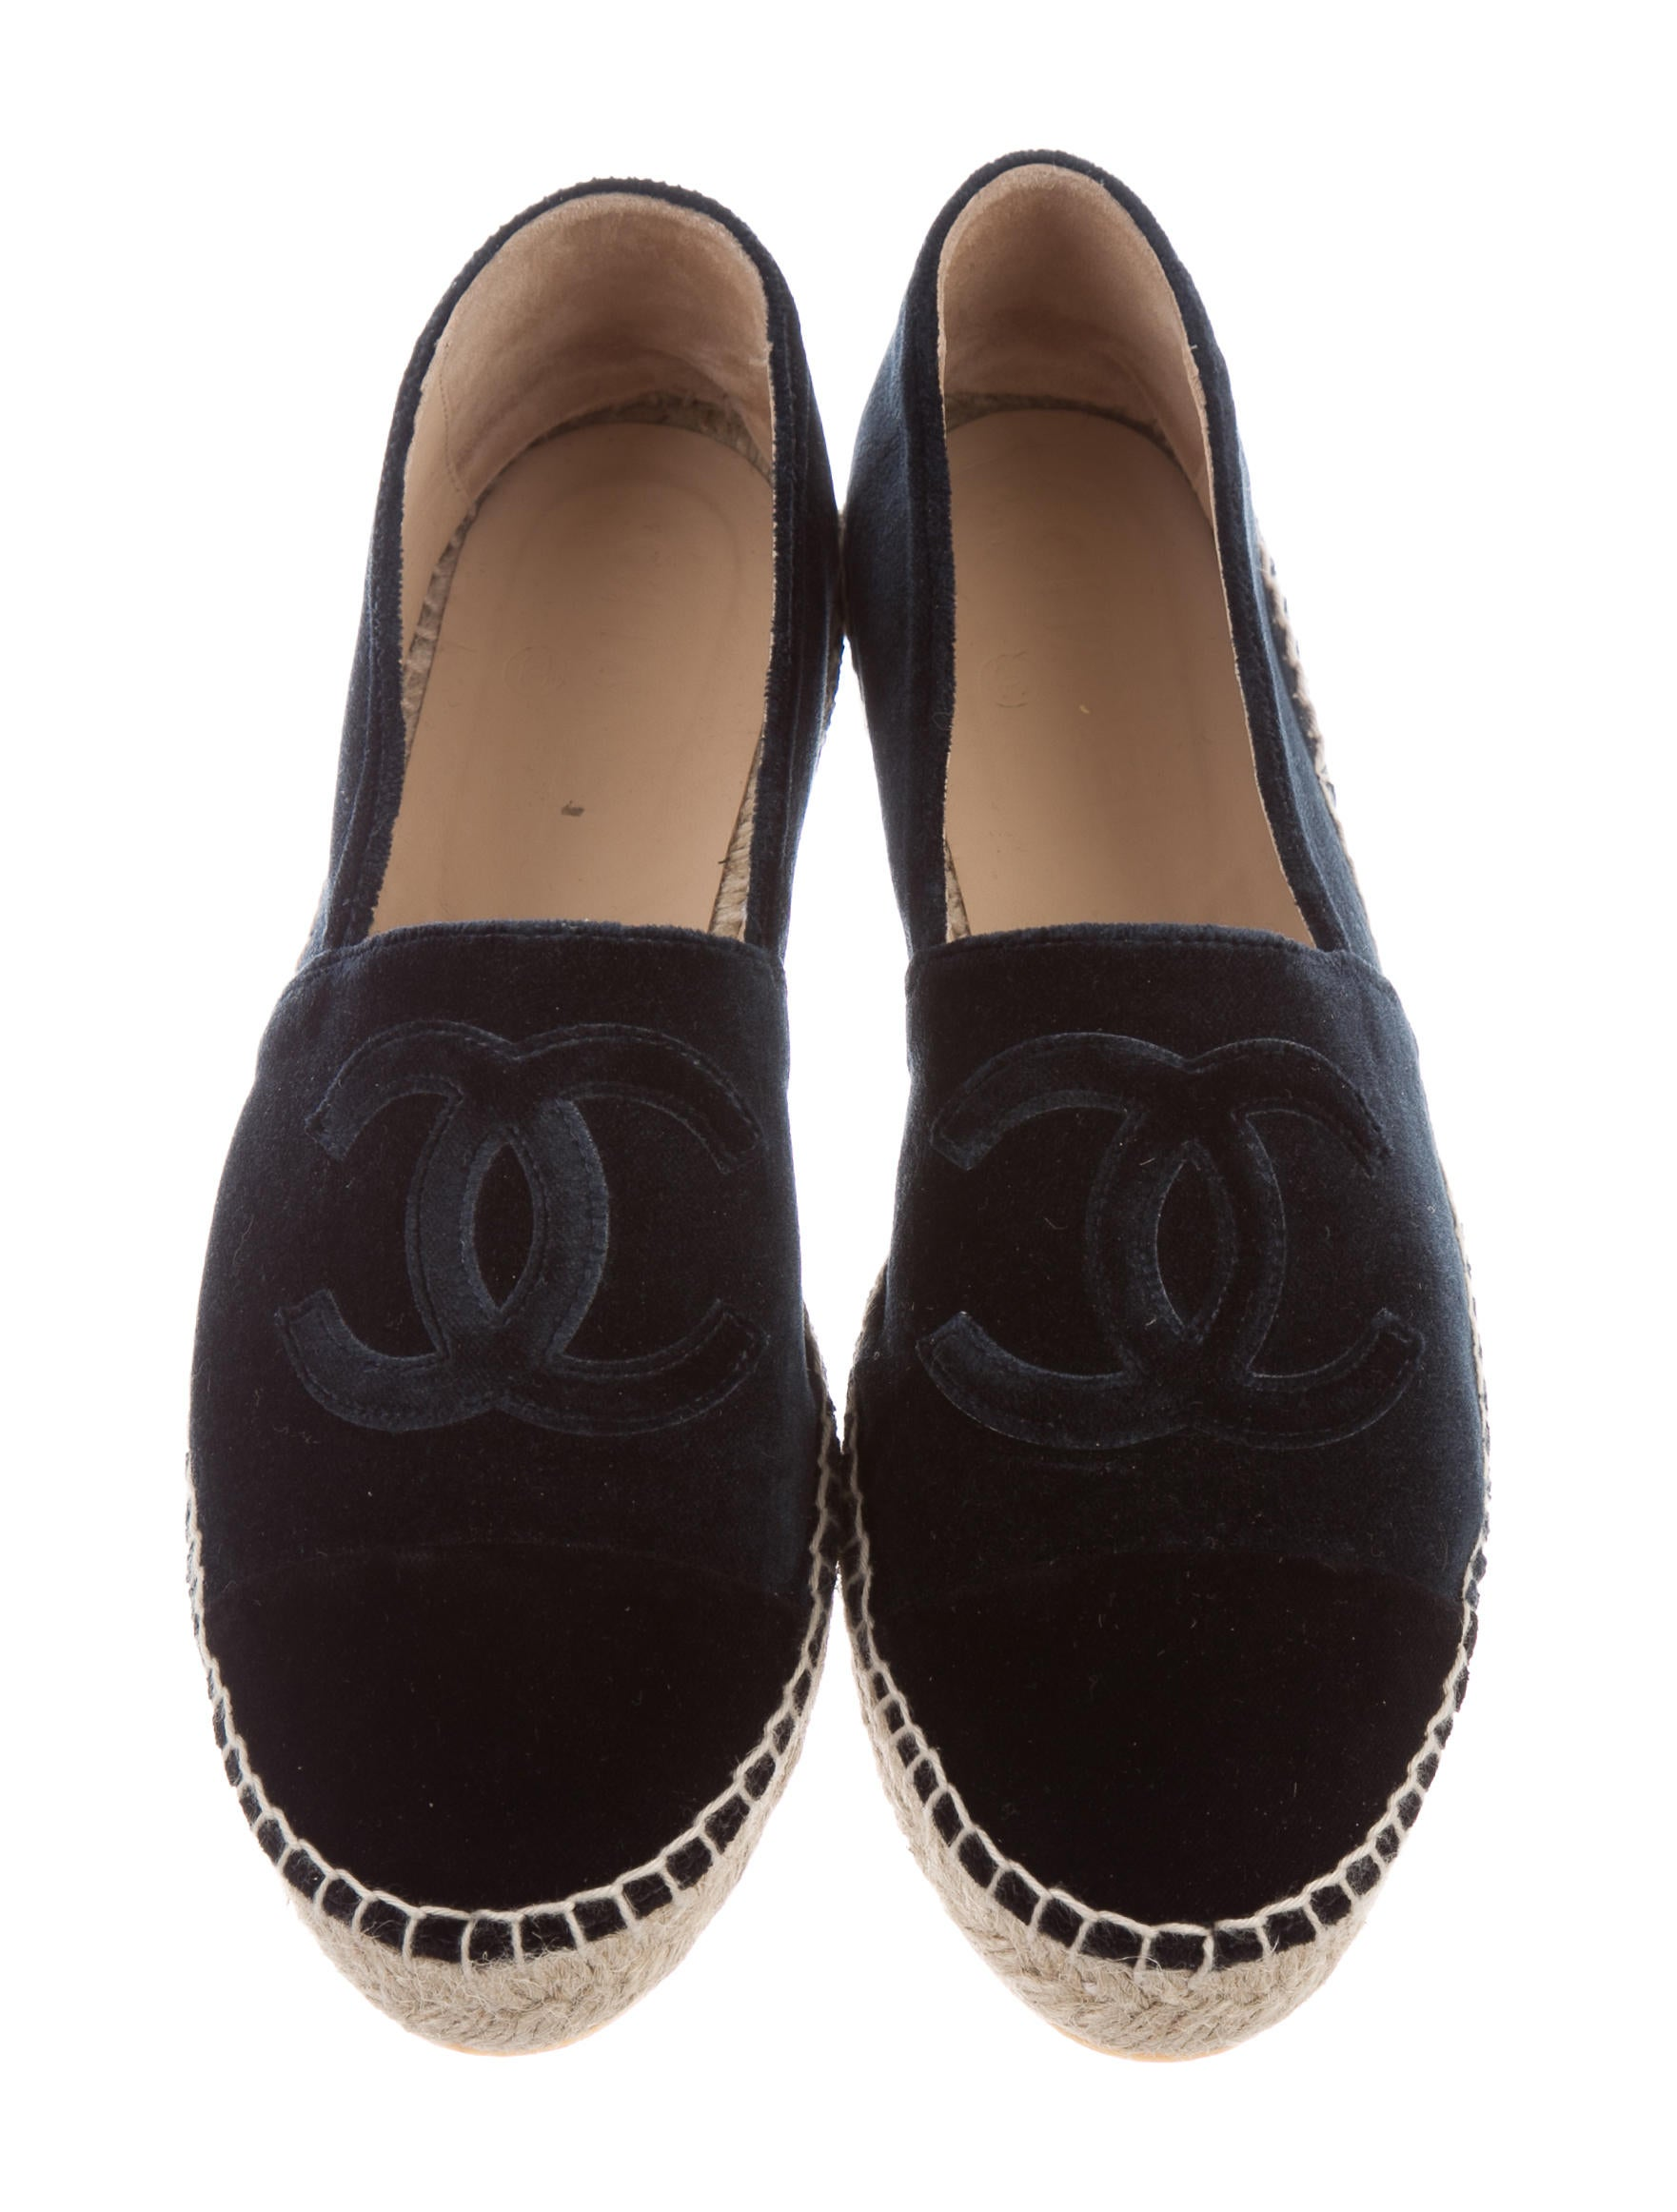 Chanel Velvet Espadrille Flats Shoes Cha164804 The